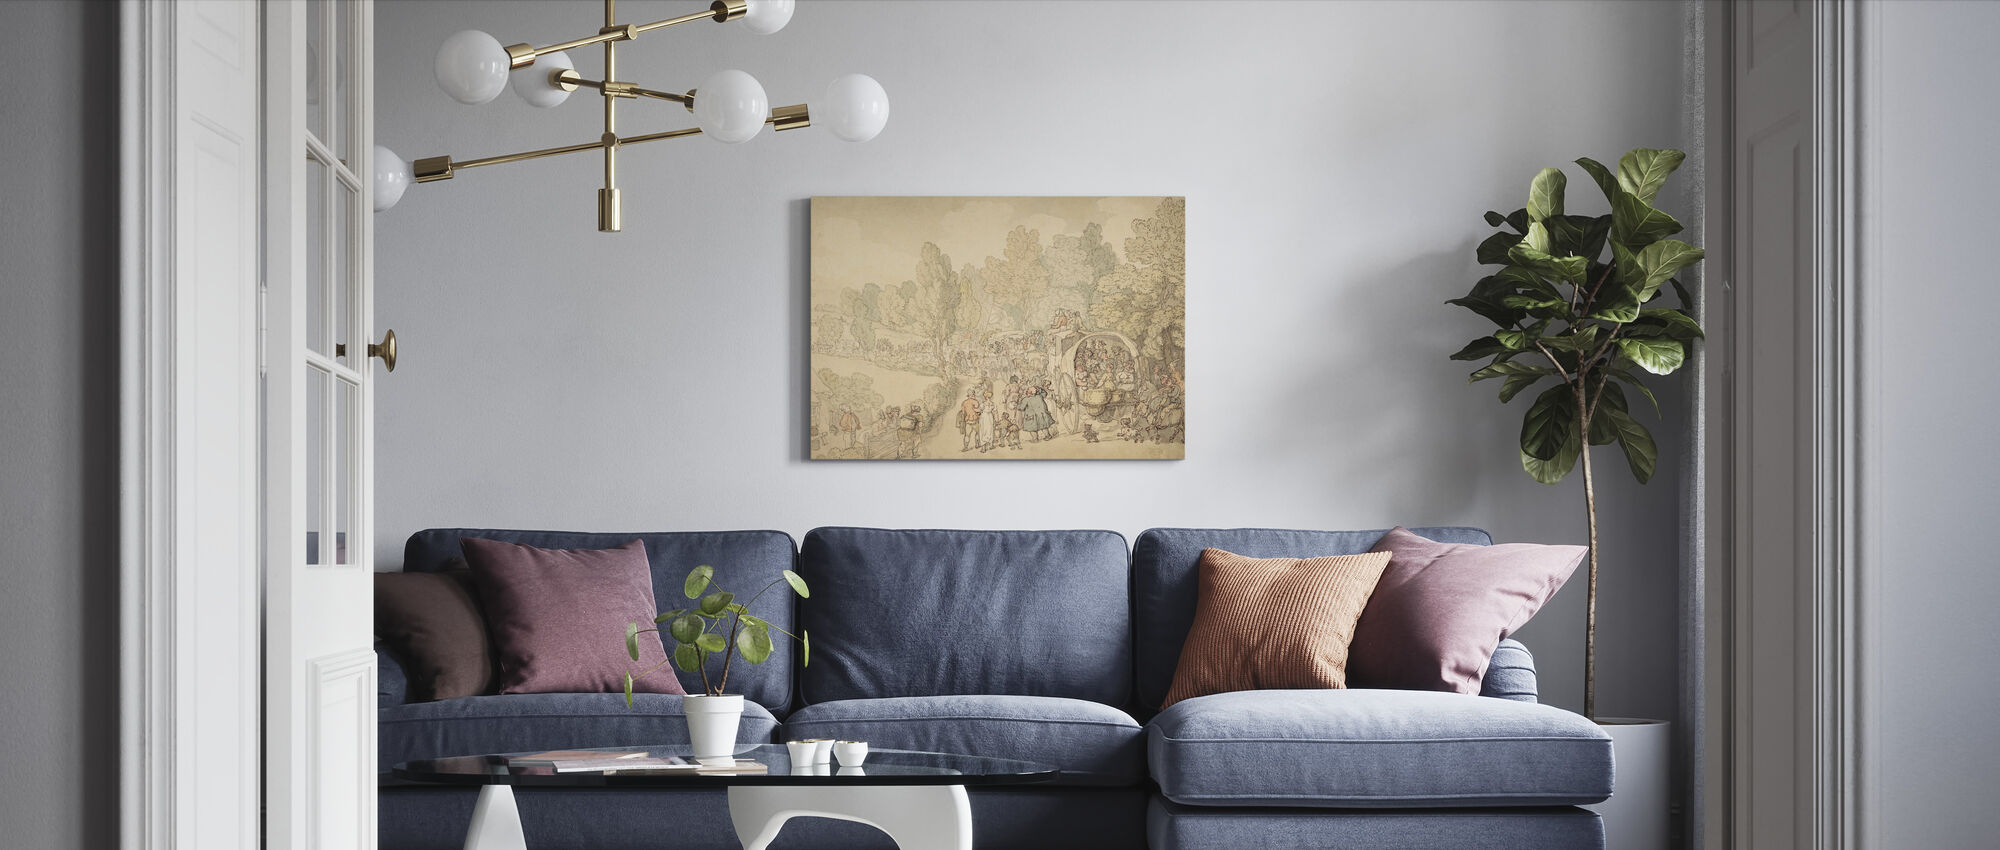 Fairlop-beurs - Canvas print - Woonkamer